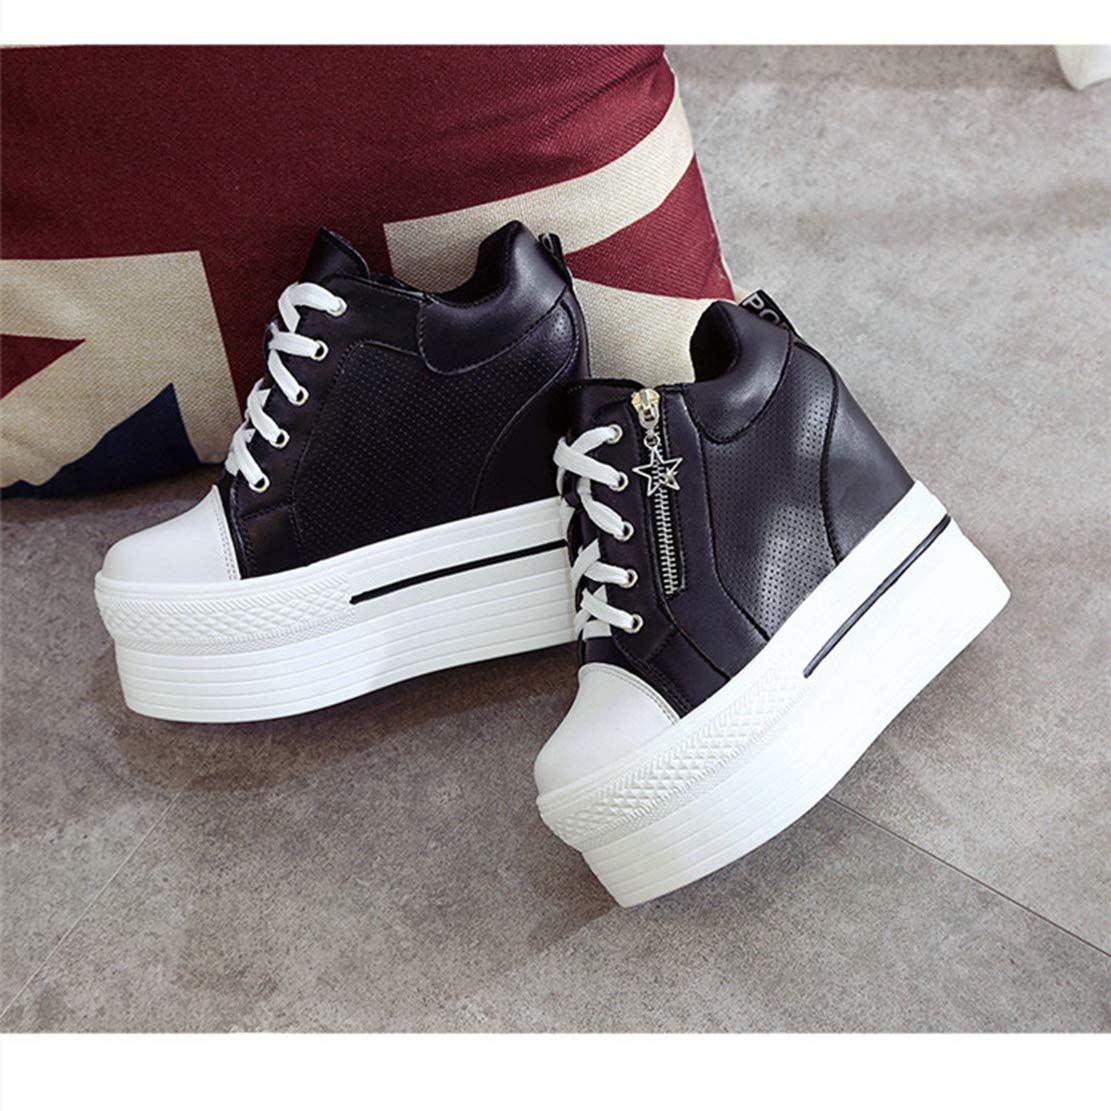 Btrada Women Platform Zipper Wedge Sneakers Waterproof Thick High Heel Shoes Increased Casual Shoes Heel B07GCNS7GR Fashion Sneakers b21950